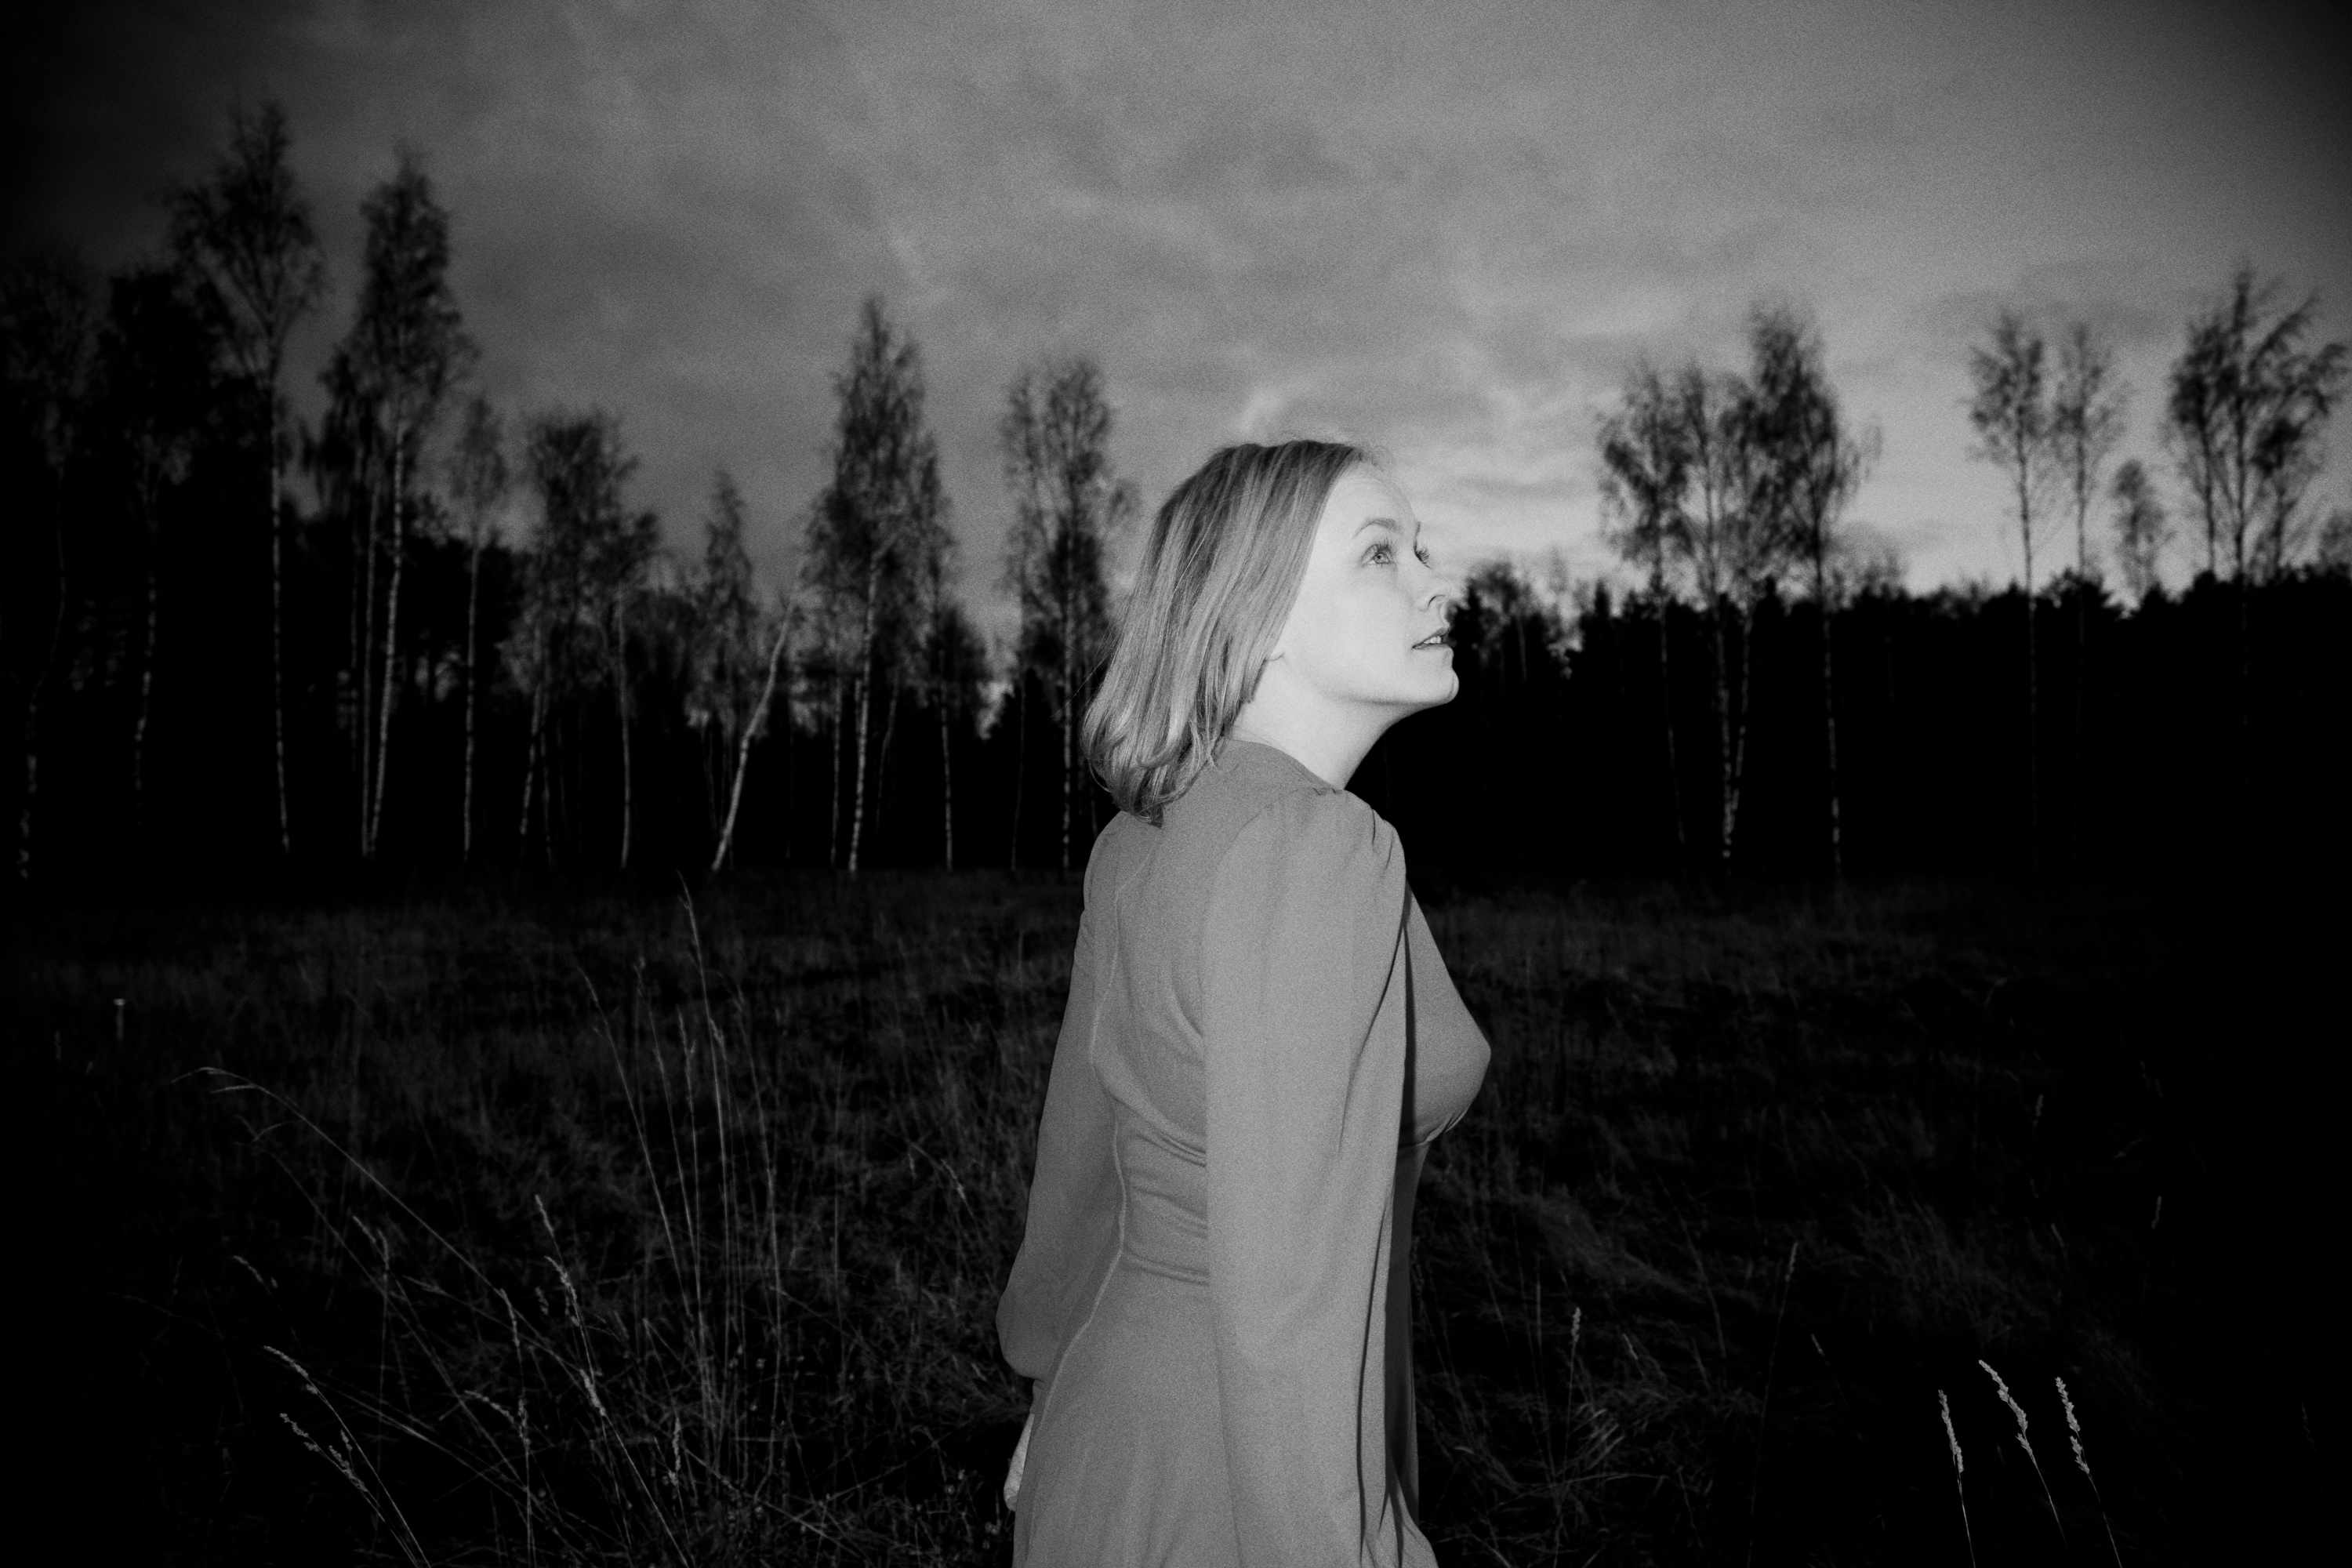 Ane Brun to Open North American Peter Gabriel Tour